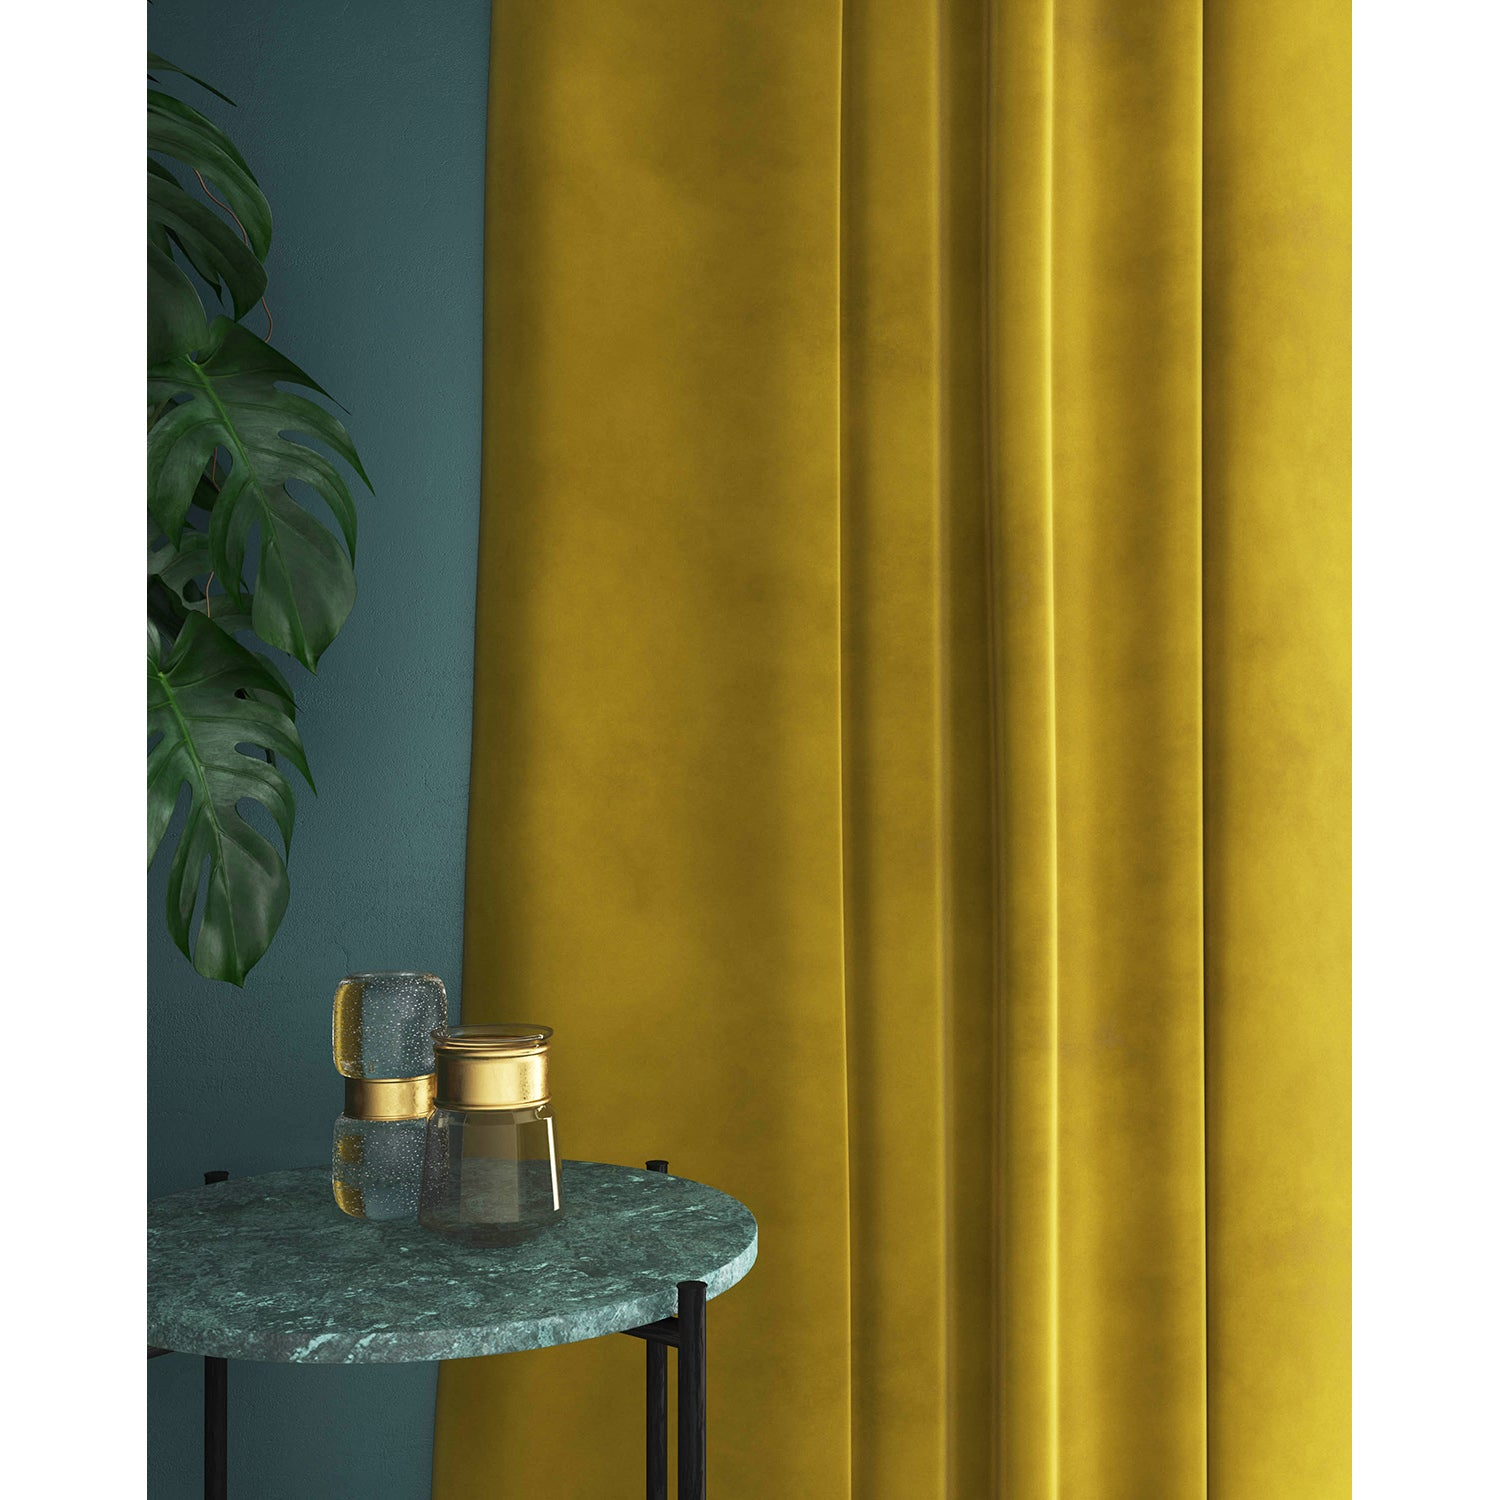 Curtain in a golden yellow velvet fabric with a stain resistant finish